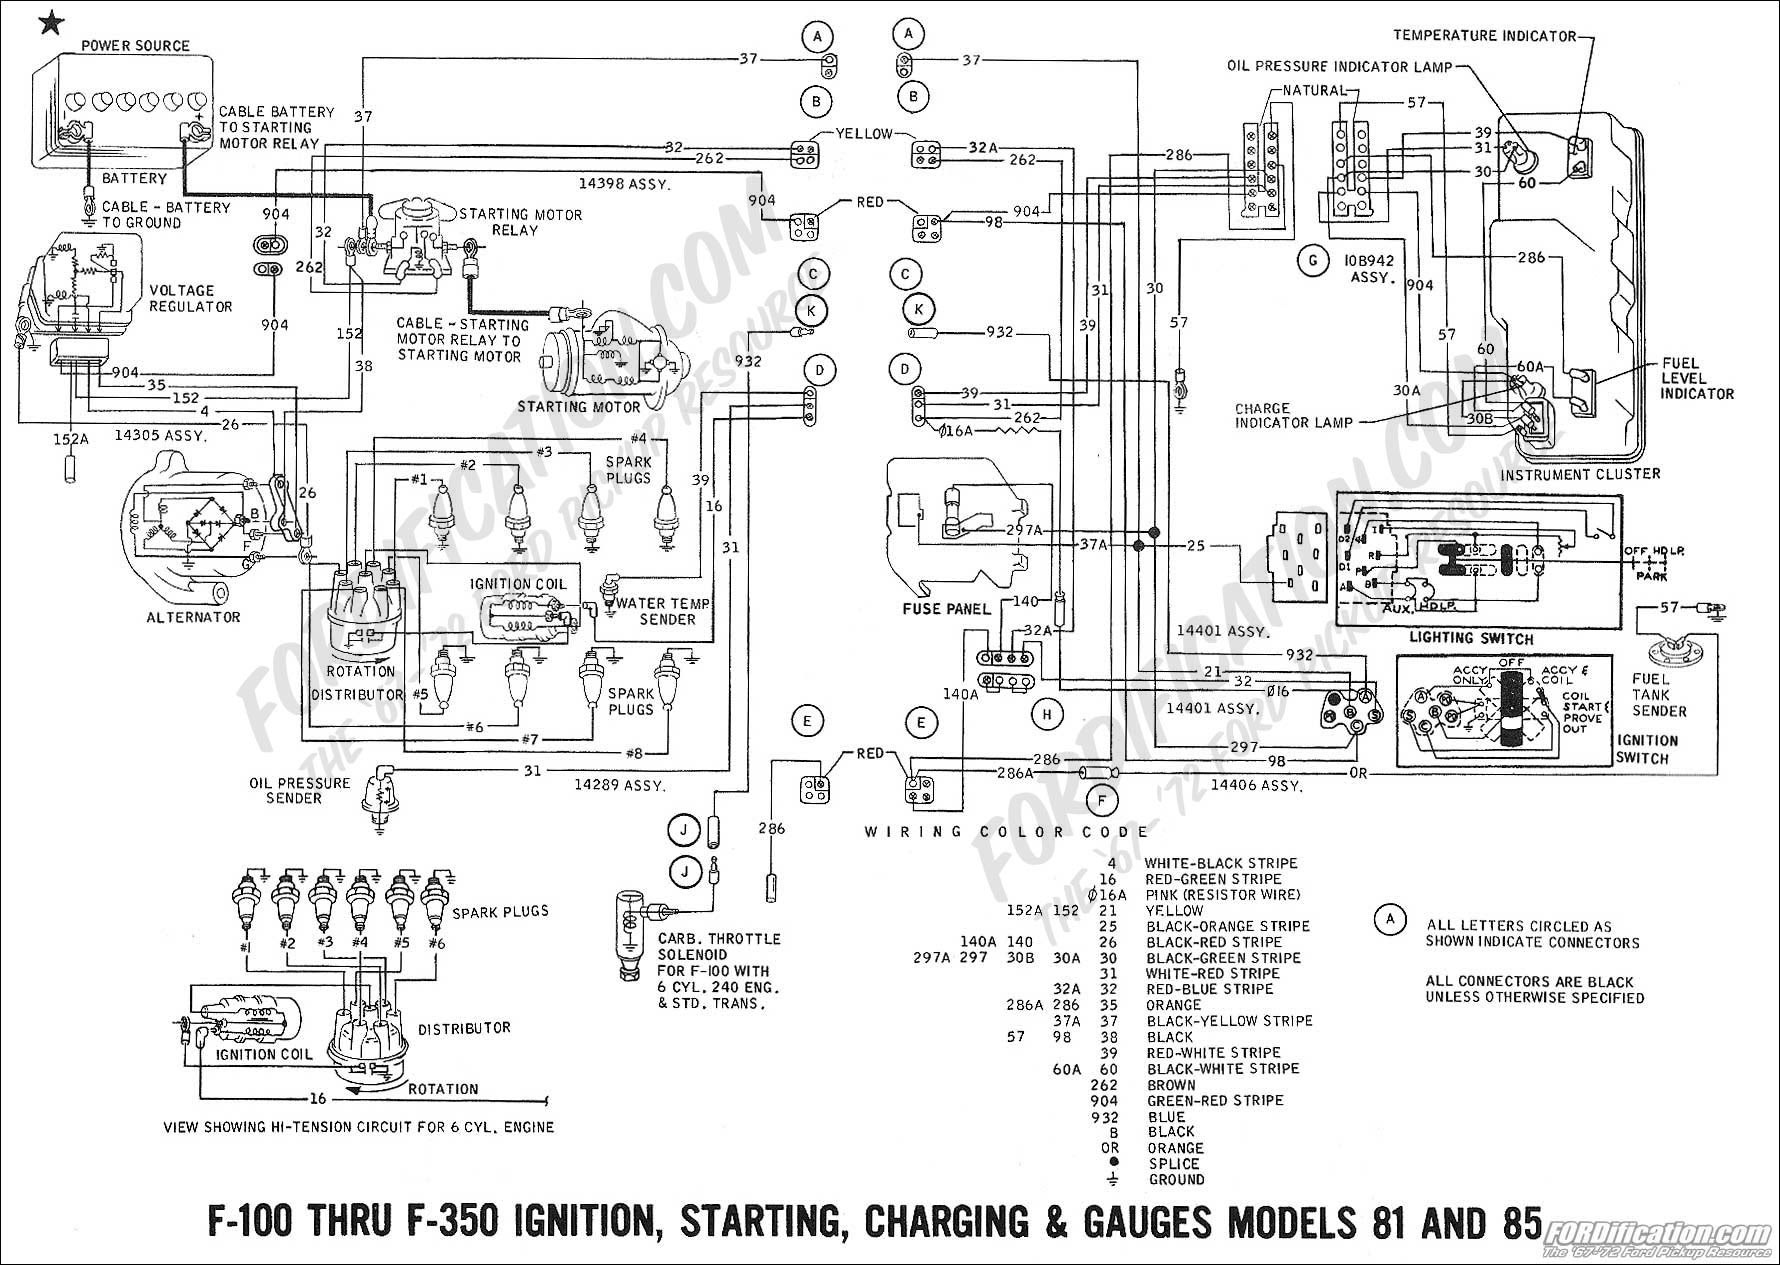 1968 Mustang Fuse Box Diagram Kc Daylighter Wiring Diagram Begeboy Wiring Diagram Source